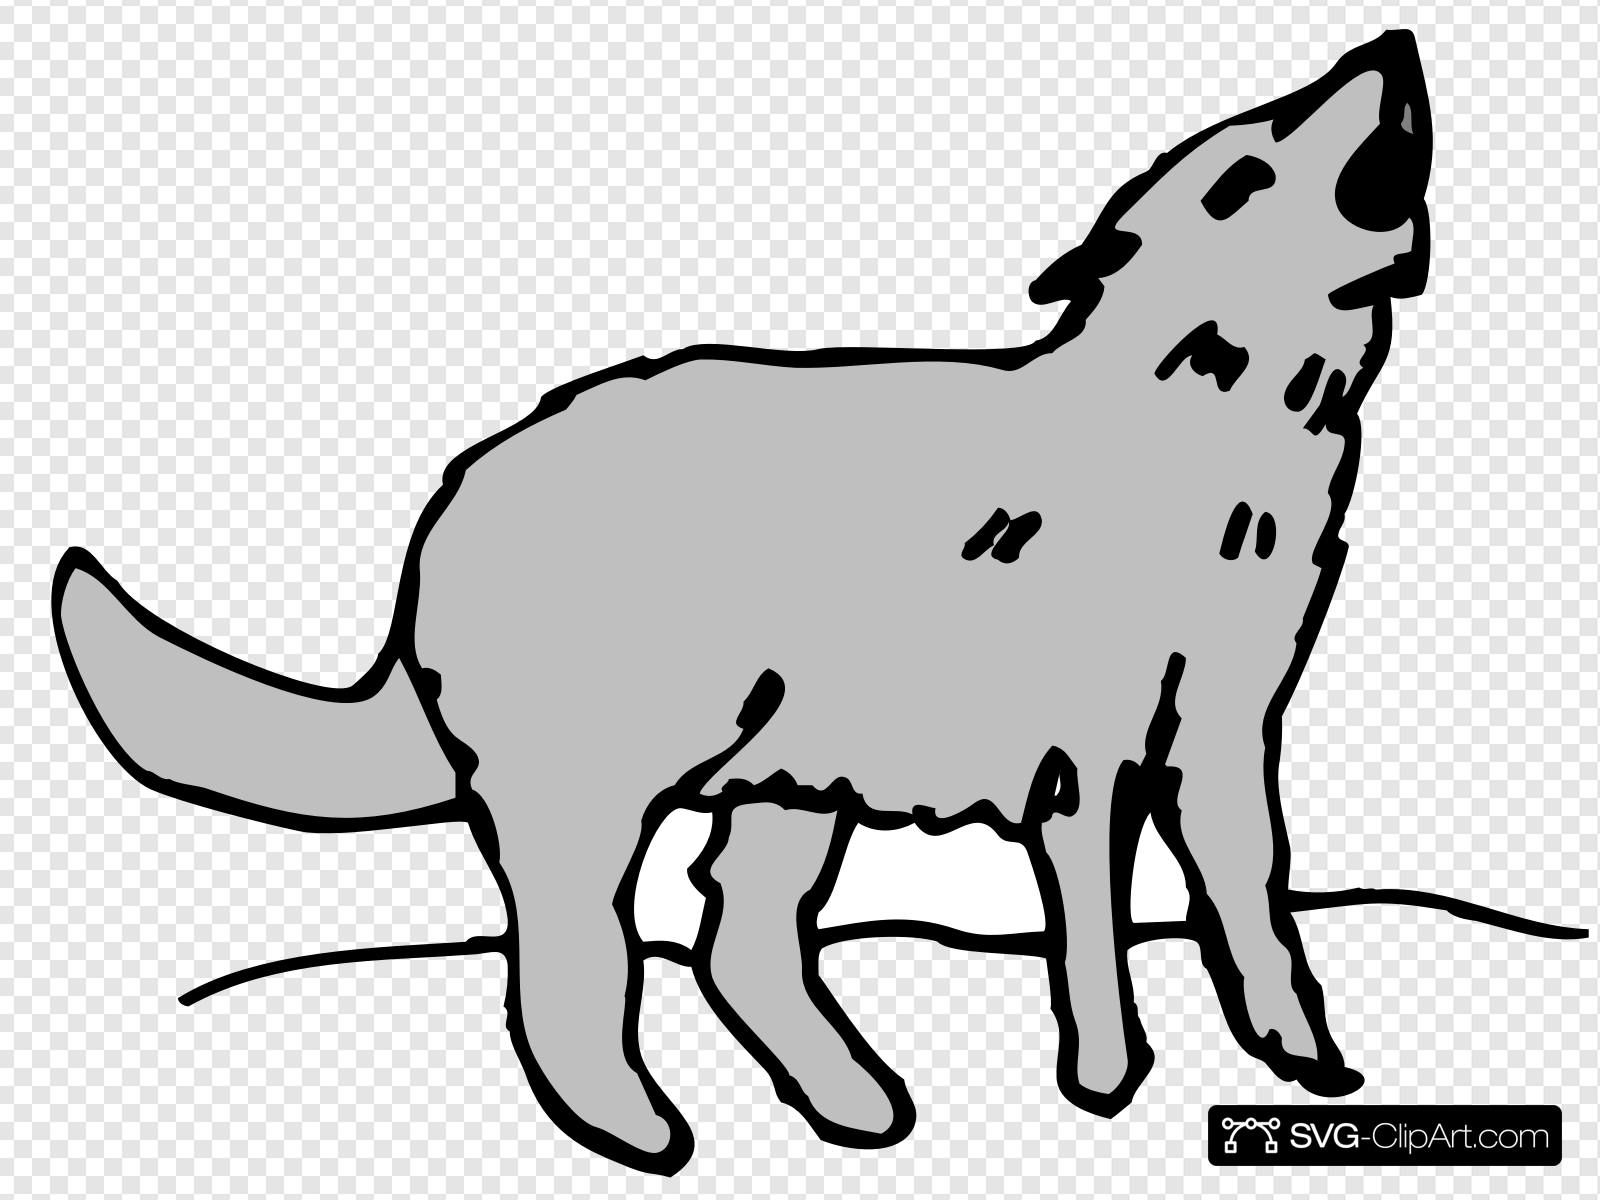 Gray Howling Coyote Clip art, Icon and SVG.